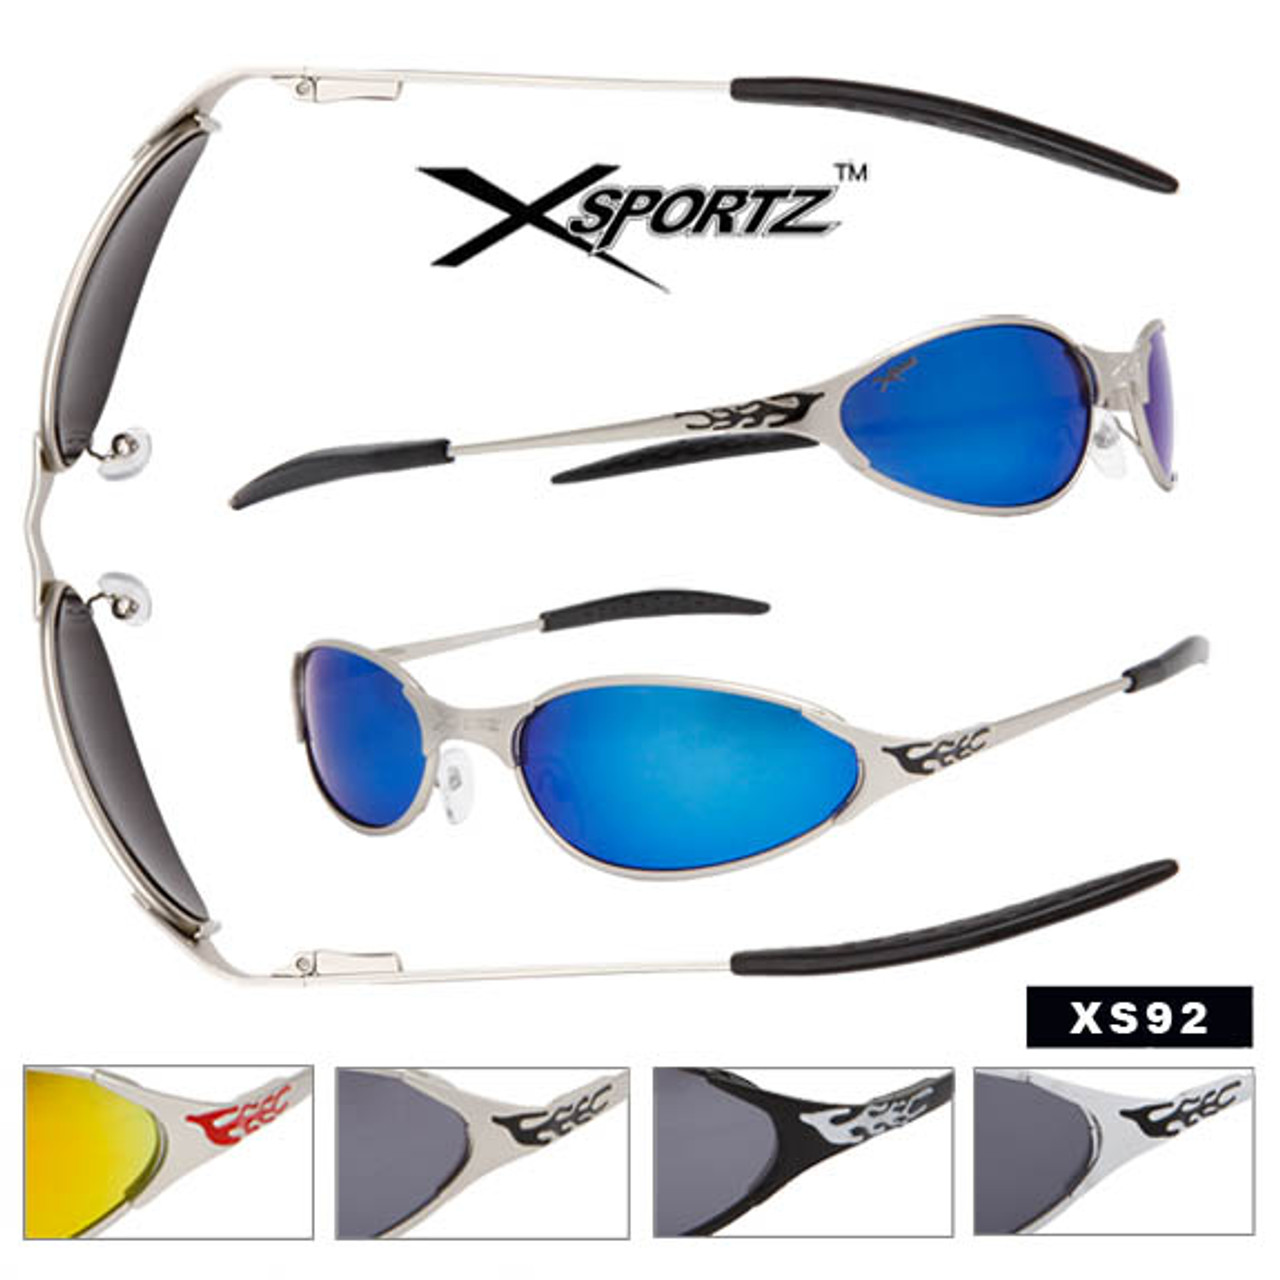 Xsportz Wholesale Sports Sunglasses with Flames XS92 (Assorted Colors) (12 pcs.)